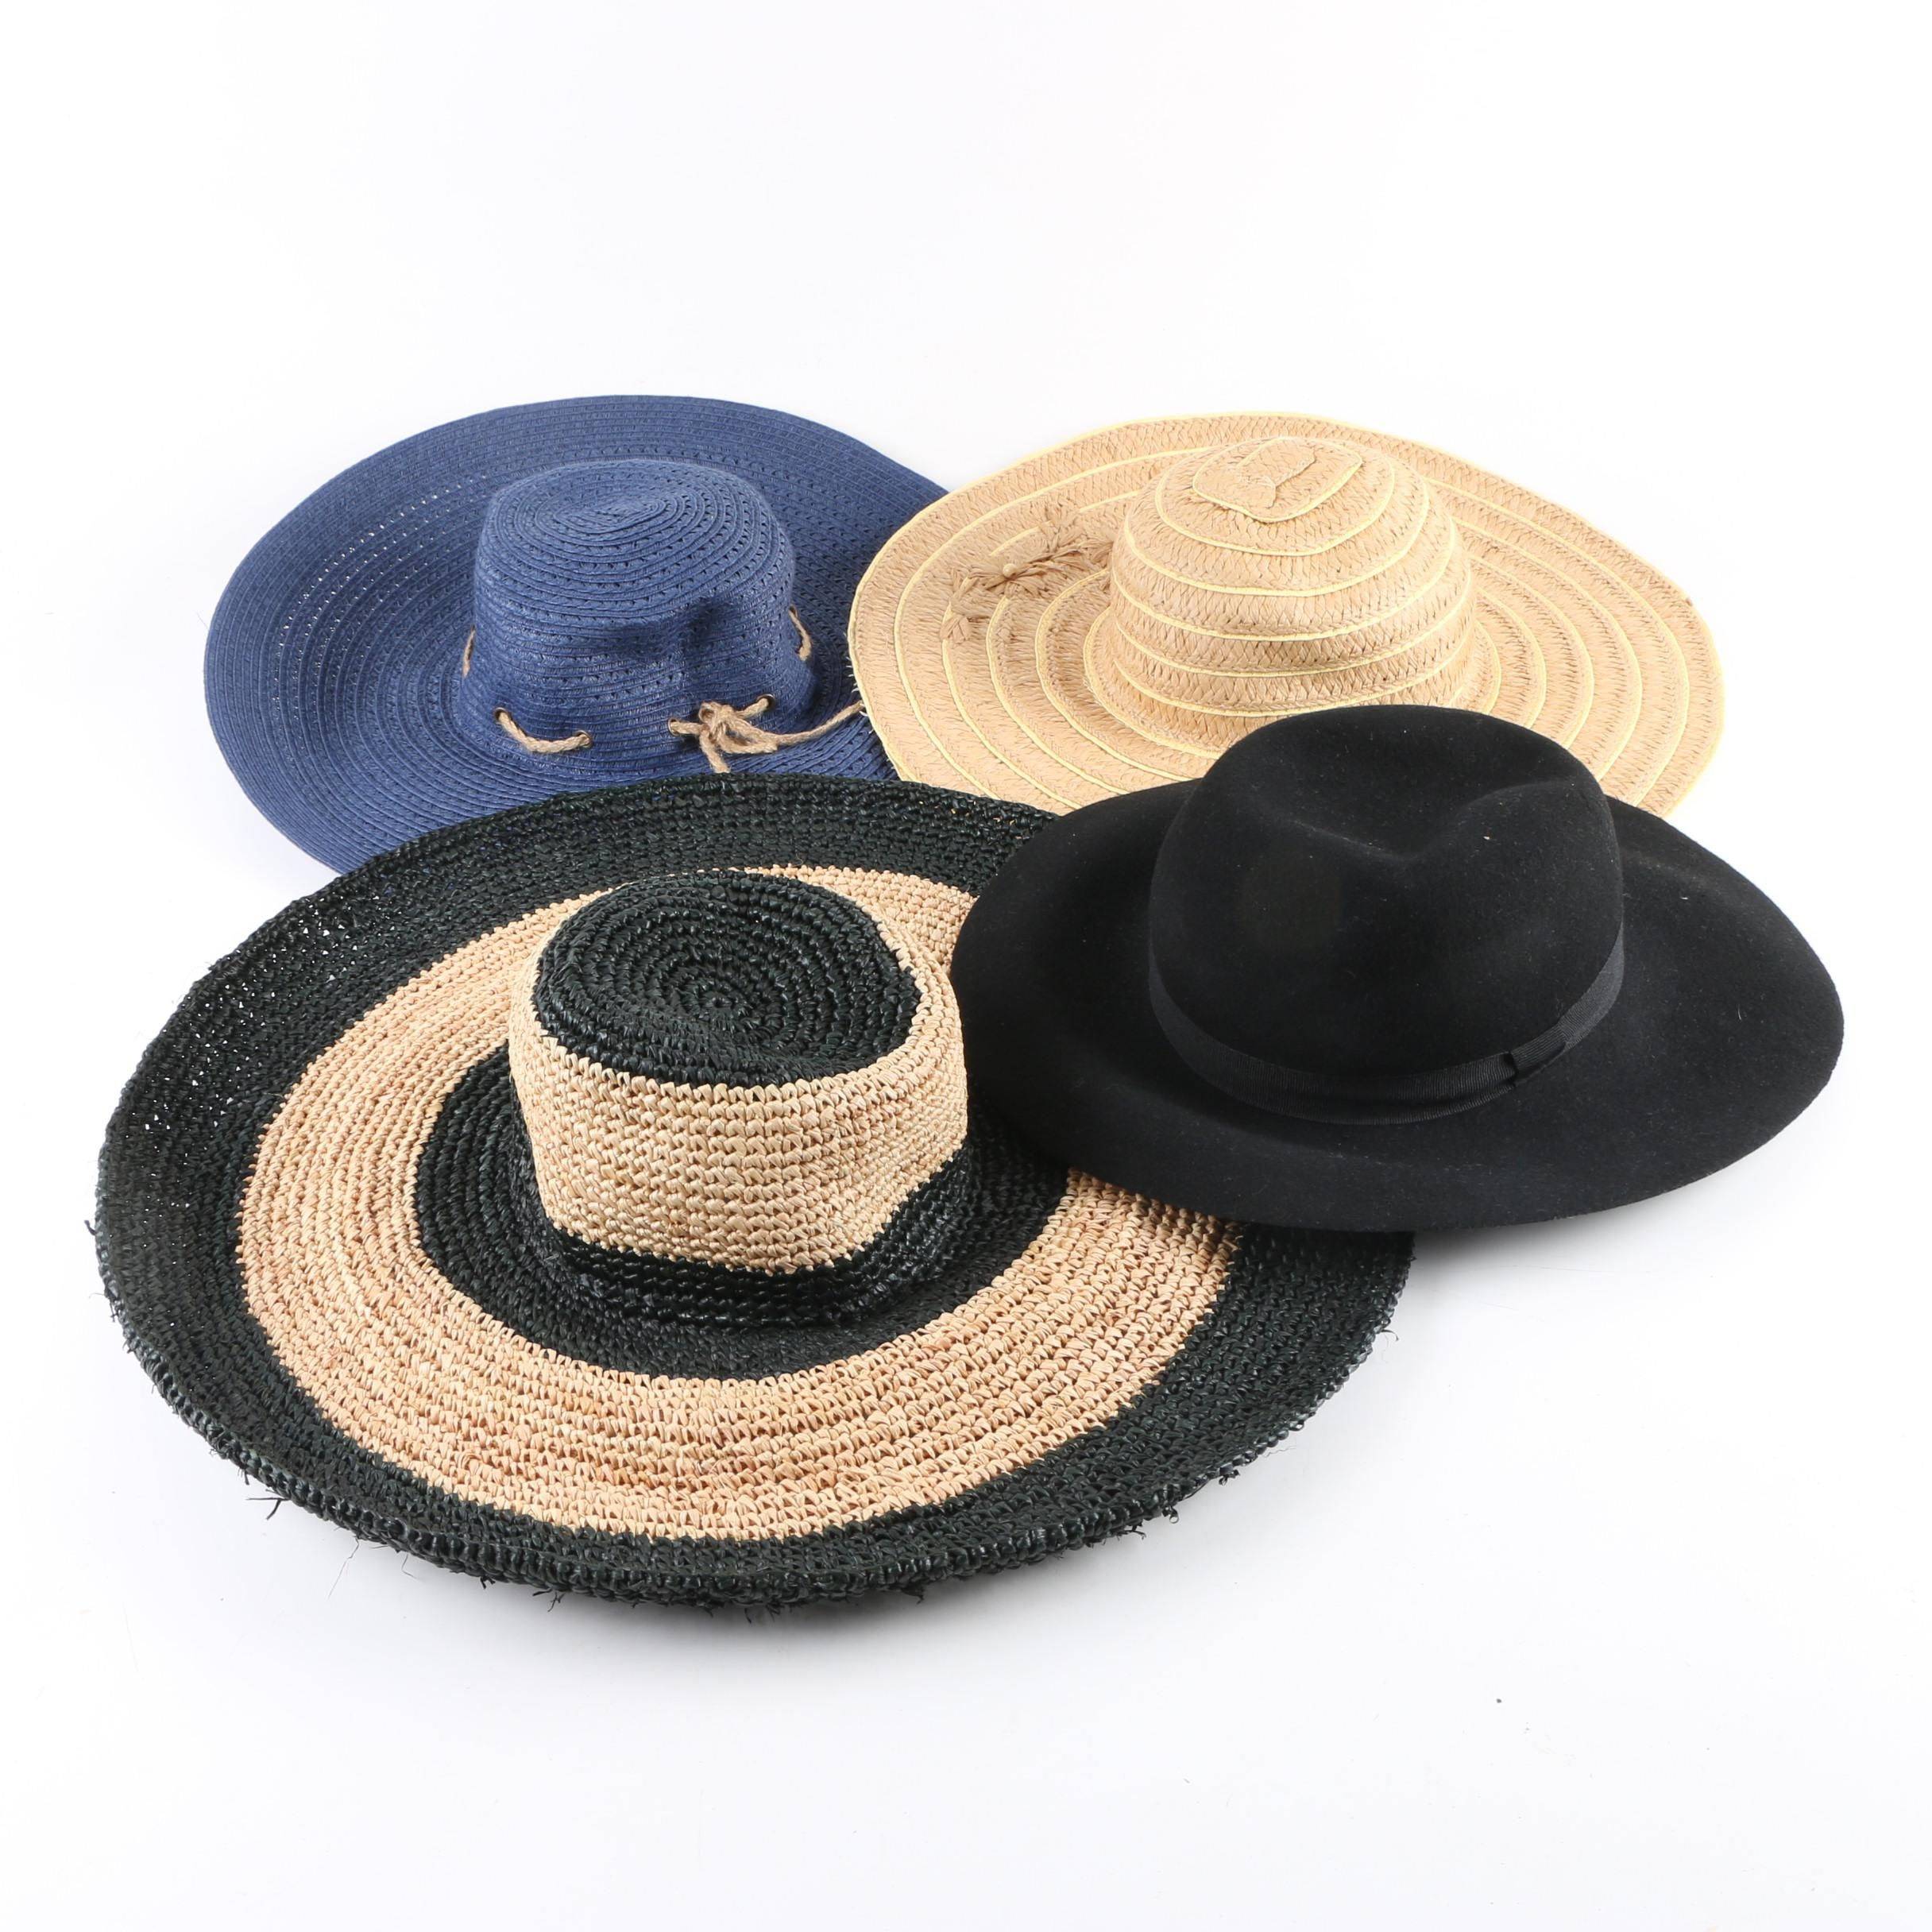 Women's Wide-Brimmed Hats Including Lauren Ralph Lauren